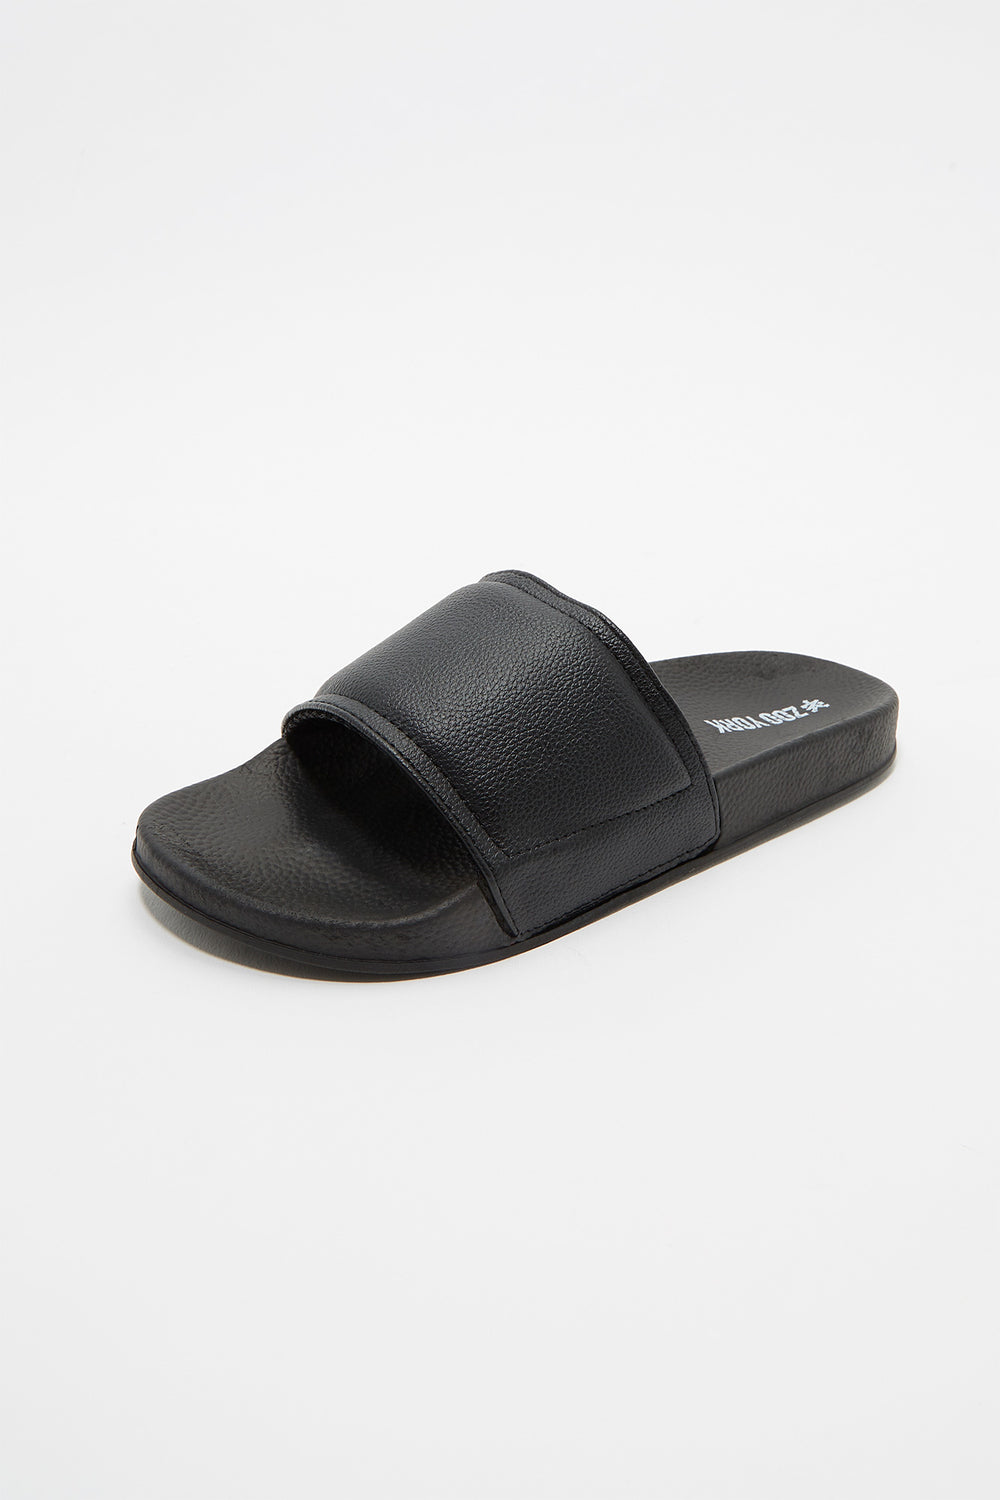 Zoo York Boys Slider Sandals Black